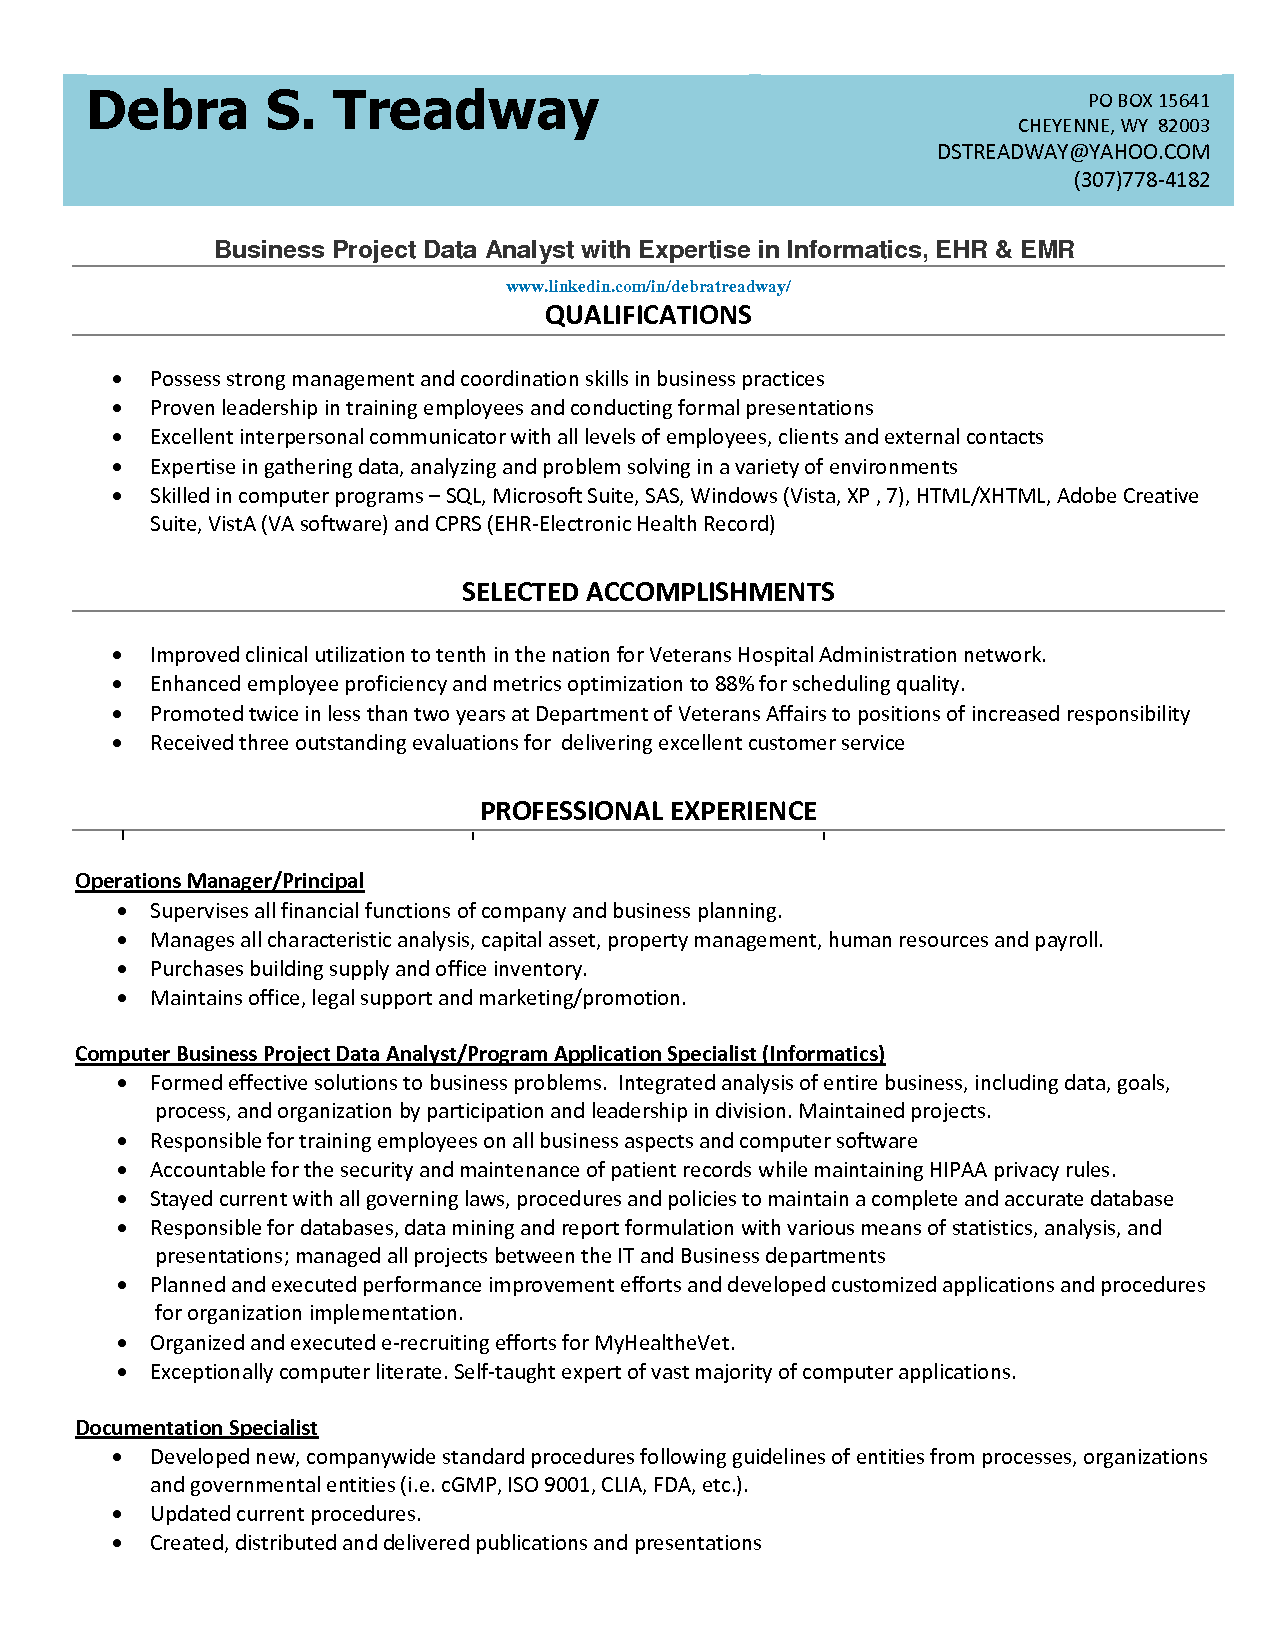 list qualifications business project data analyst resume example ...